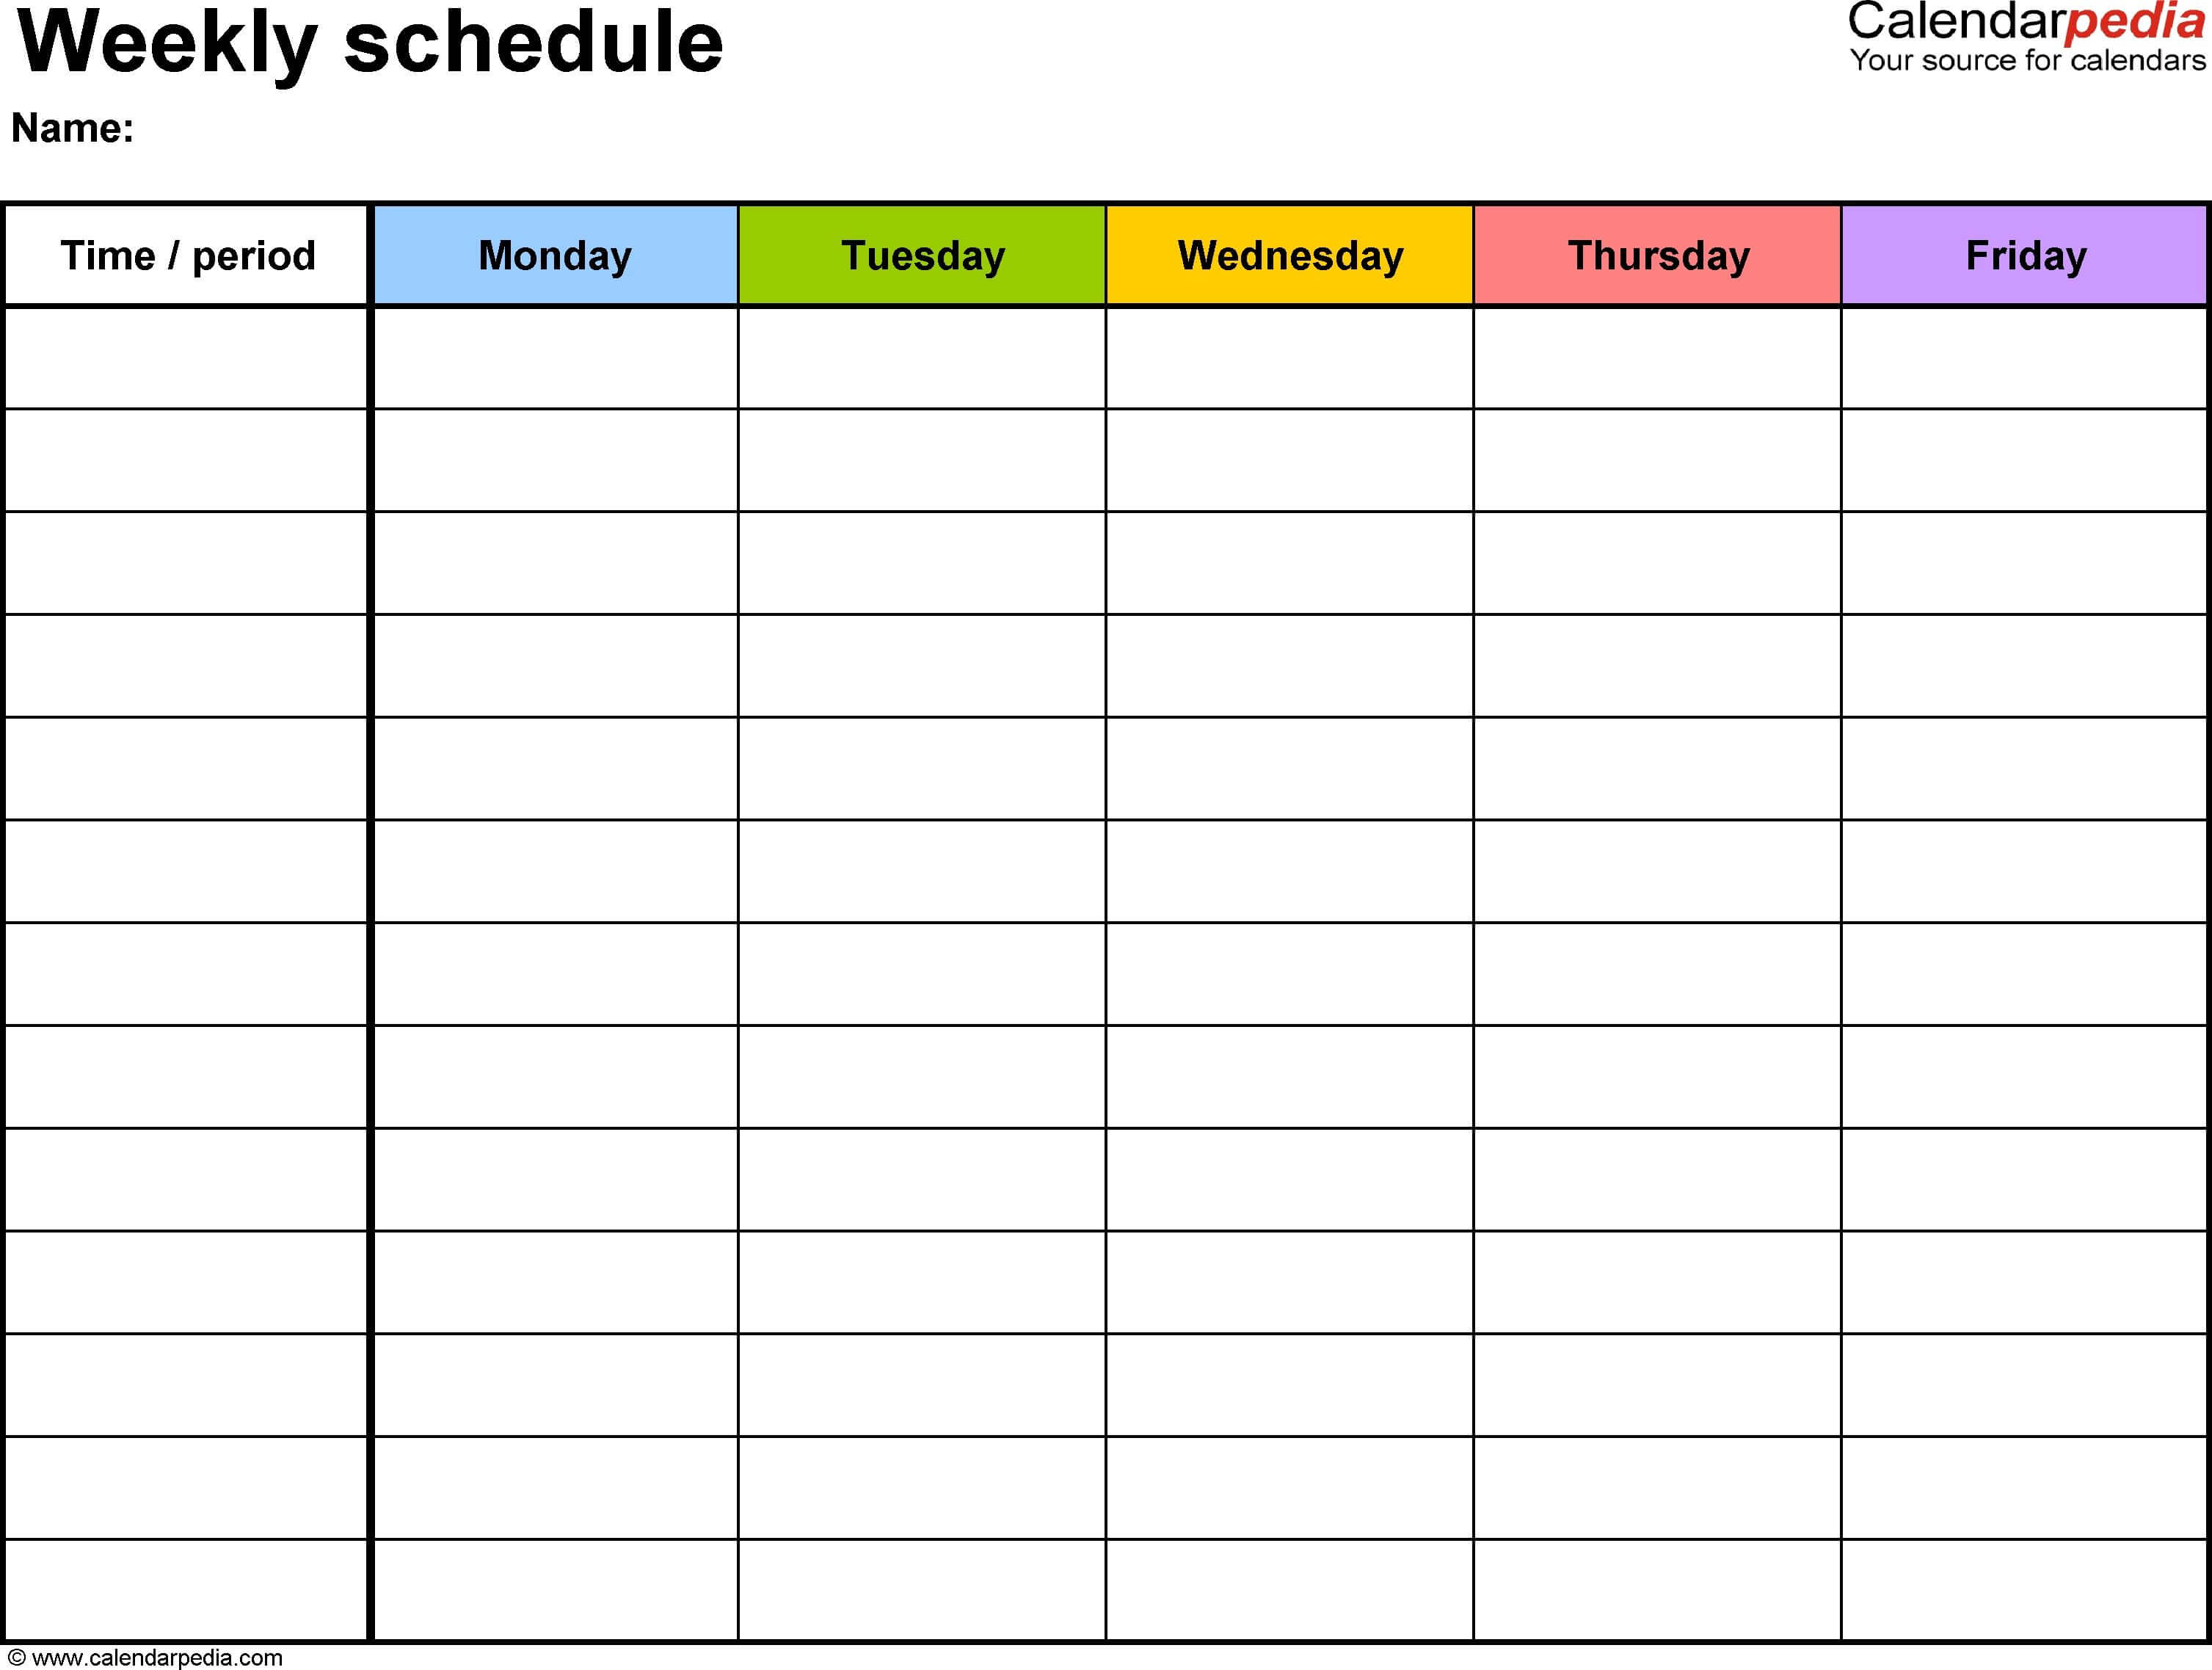 Weekly Schedule Template For Word Ver Free For Blank Revision Timetable Template